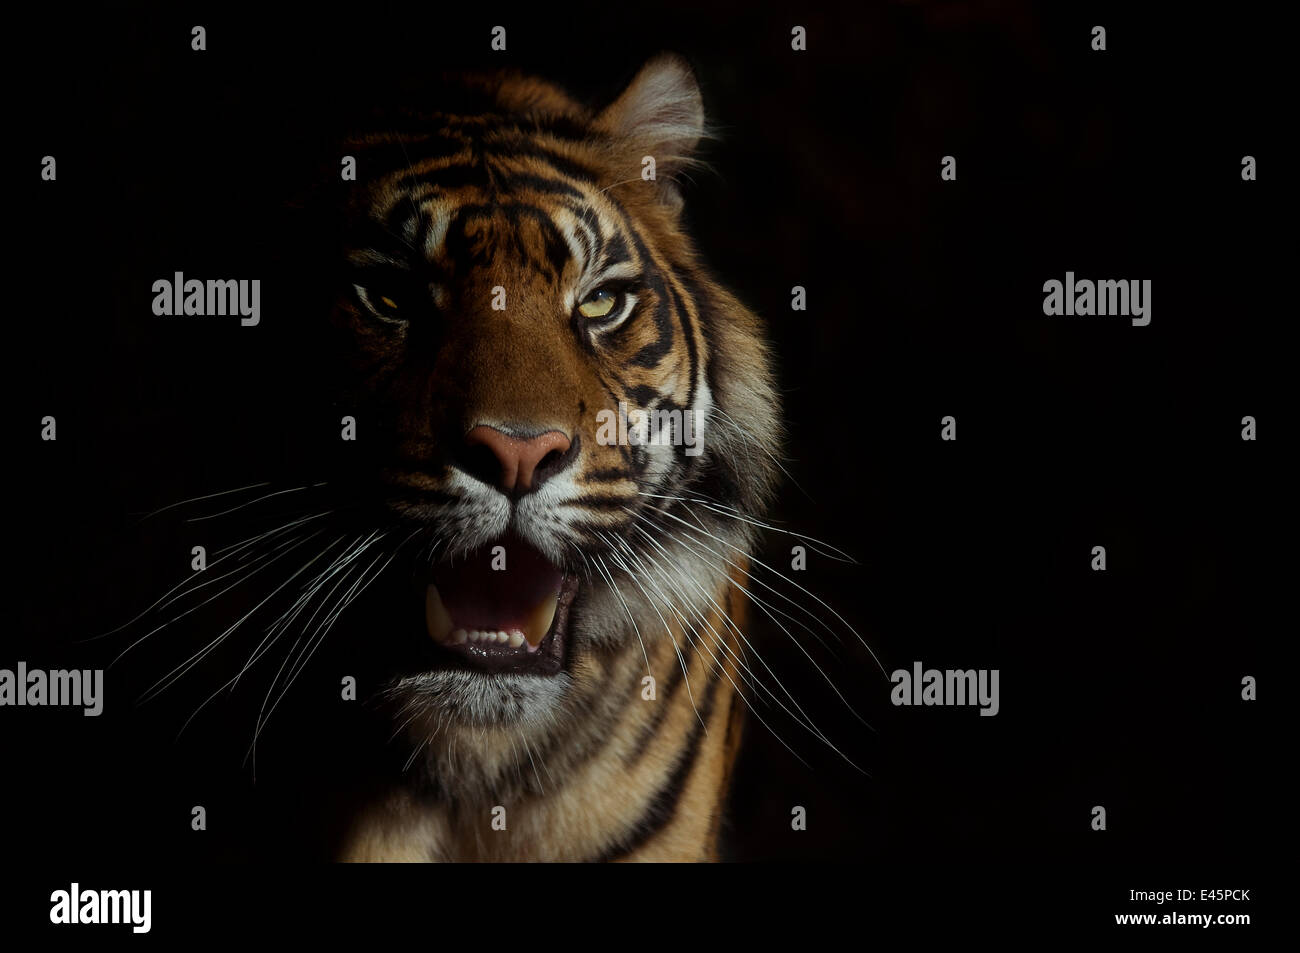 Head portrait of Sumatran tiger (Panthera tigris sumatrae) with face half cast in shadow, with aggressive expression, - Stock Image